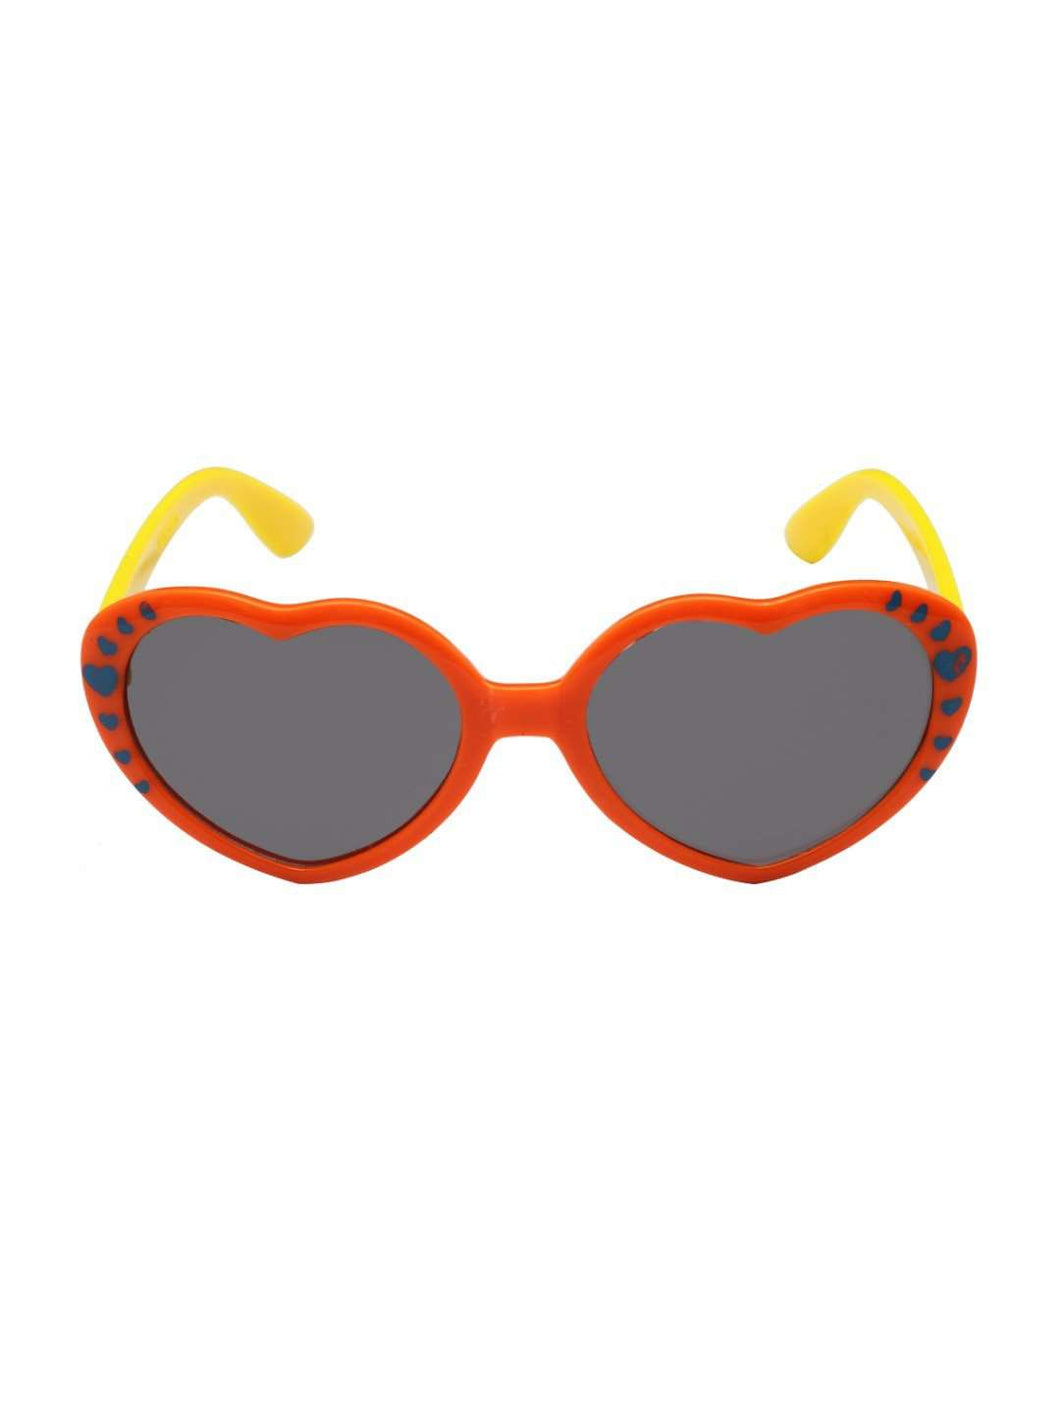 Stol'n Kids Orange and Yellow Heart Sunglasses - SWHF